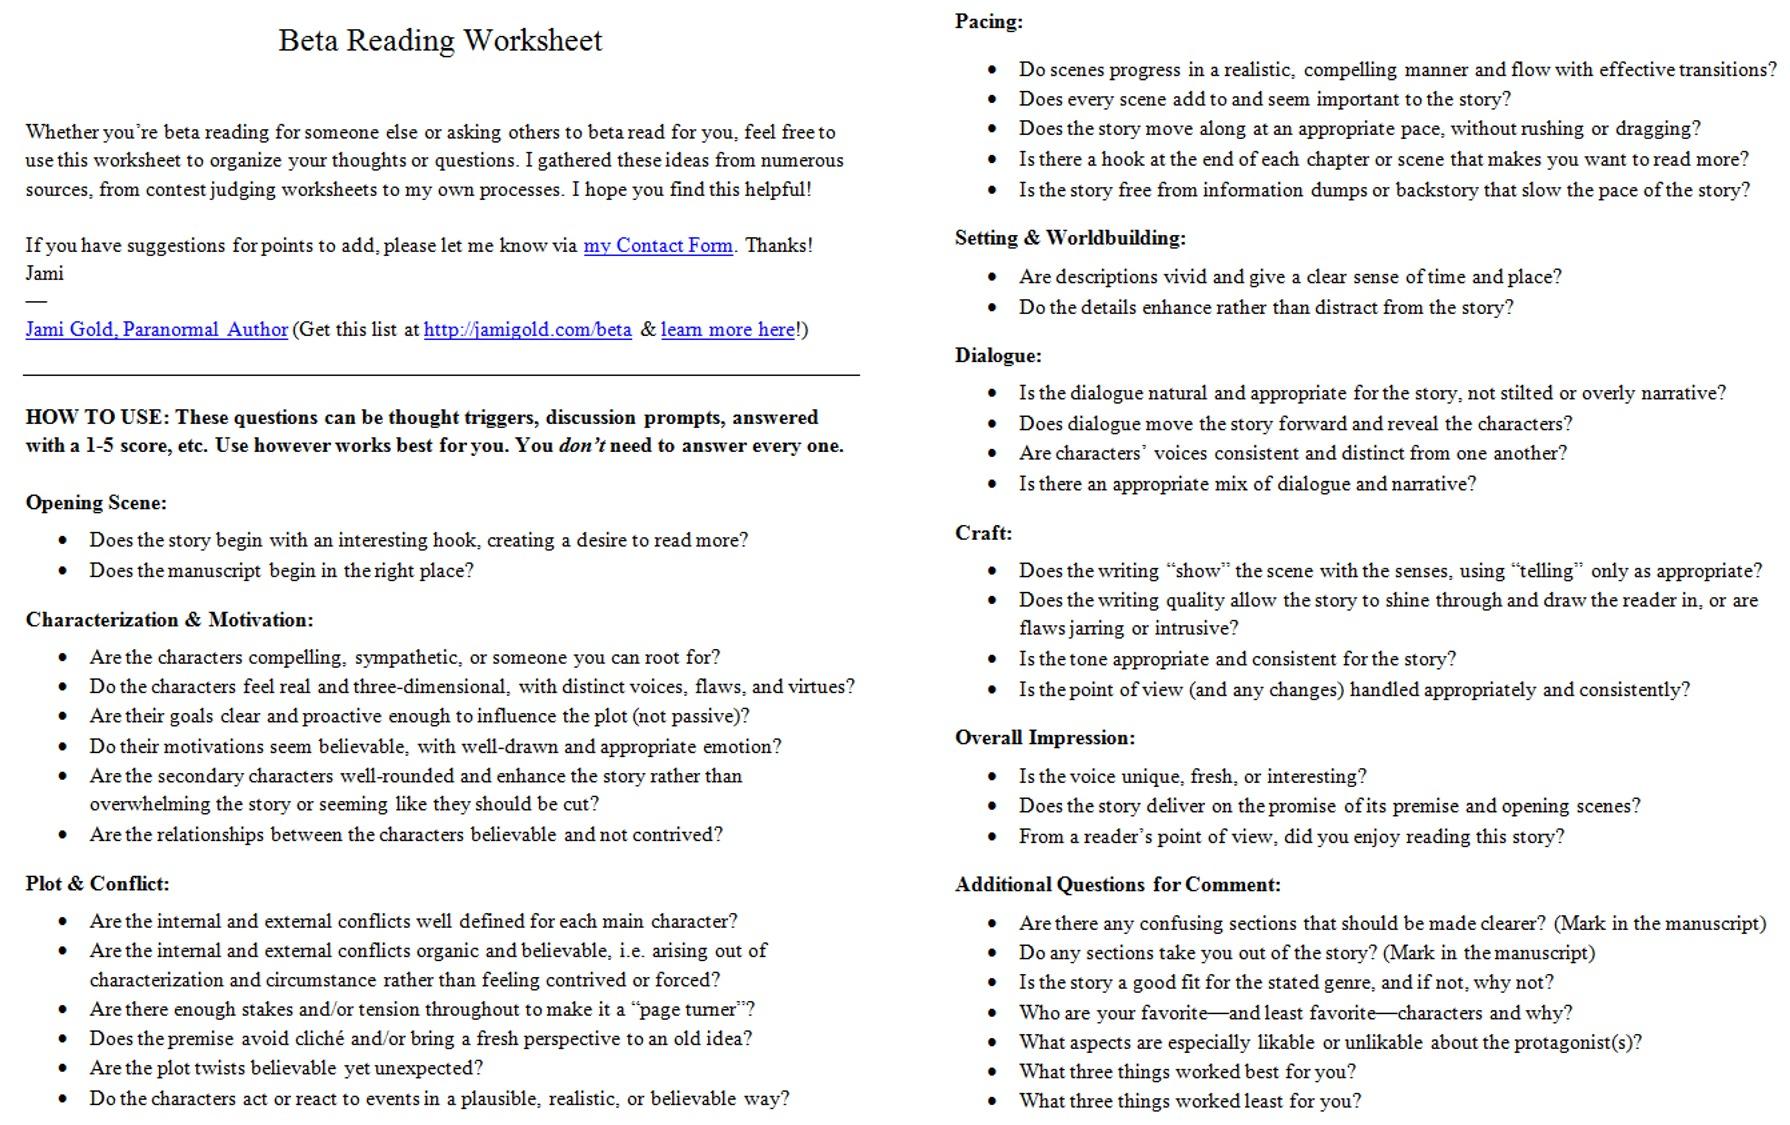 Aldiablosus  Winsome Worksheets For Writers  Jami Gold Paranormal Author With Fetching Screen Shot Of The Twopage Beta Reading Worksheet With Amusing Main Idea And Supporting Details Worksheets Th Grade Also Cursive A Worksheet In Addition Prime And Composite Number Worksheets And Types Of Maps Worksheets As Well As Sixth Grade Language Arts Worksheets Additionally Graph Paper Art Worksheets From Jamigoldcom With Aldiablosus  Fetching Worksheets For Writers  Jami Gold Paranormal Author With Amusing Screen Shot Of The Twopage Beta Reading Worksheet And Winsome Main Idea And Supporting Details Worksheets Th Grade Also Cursive A Worksheet In Addition Prime And Composite Number Worksheets From Jamigoldcom